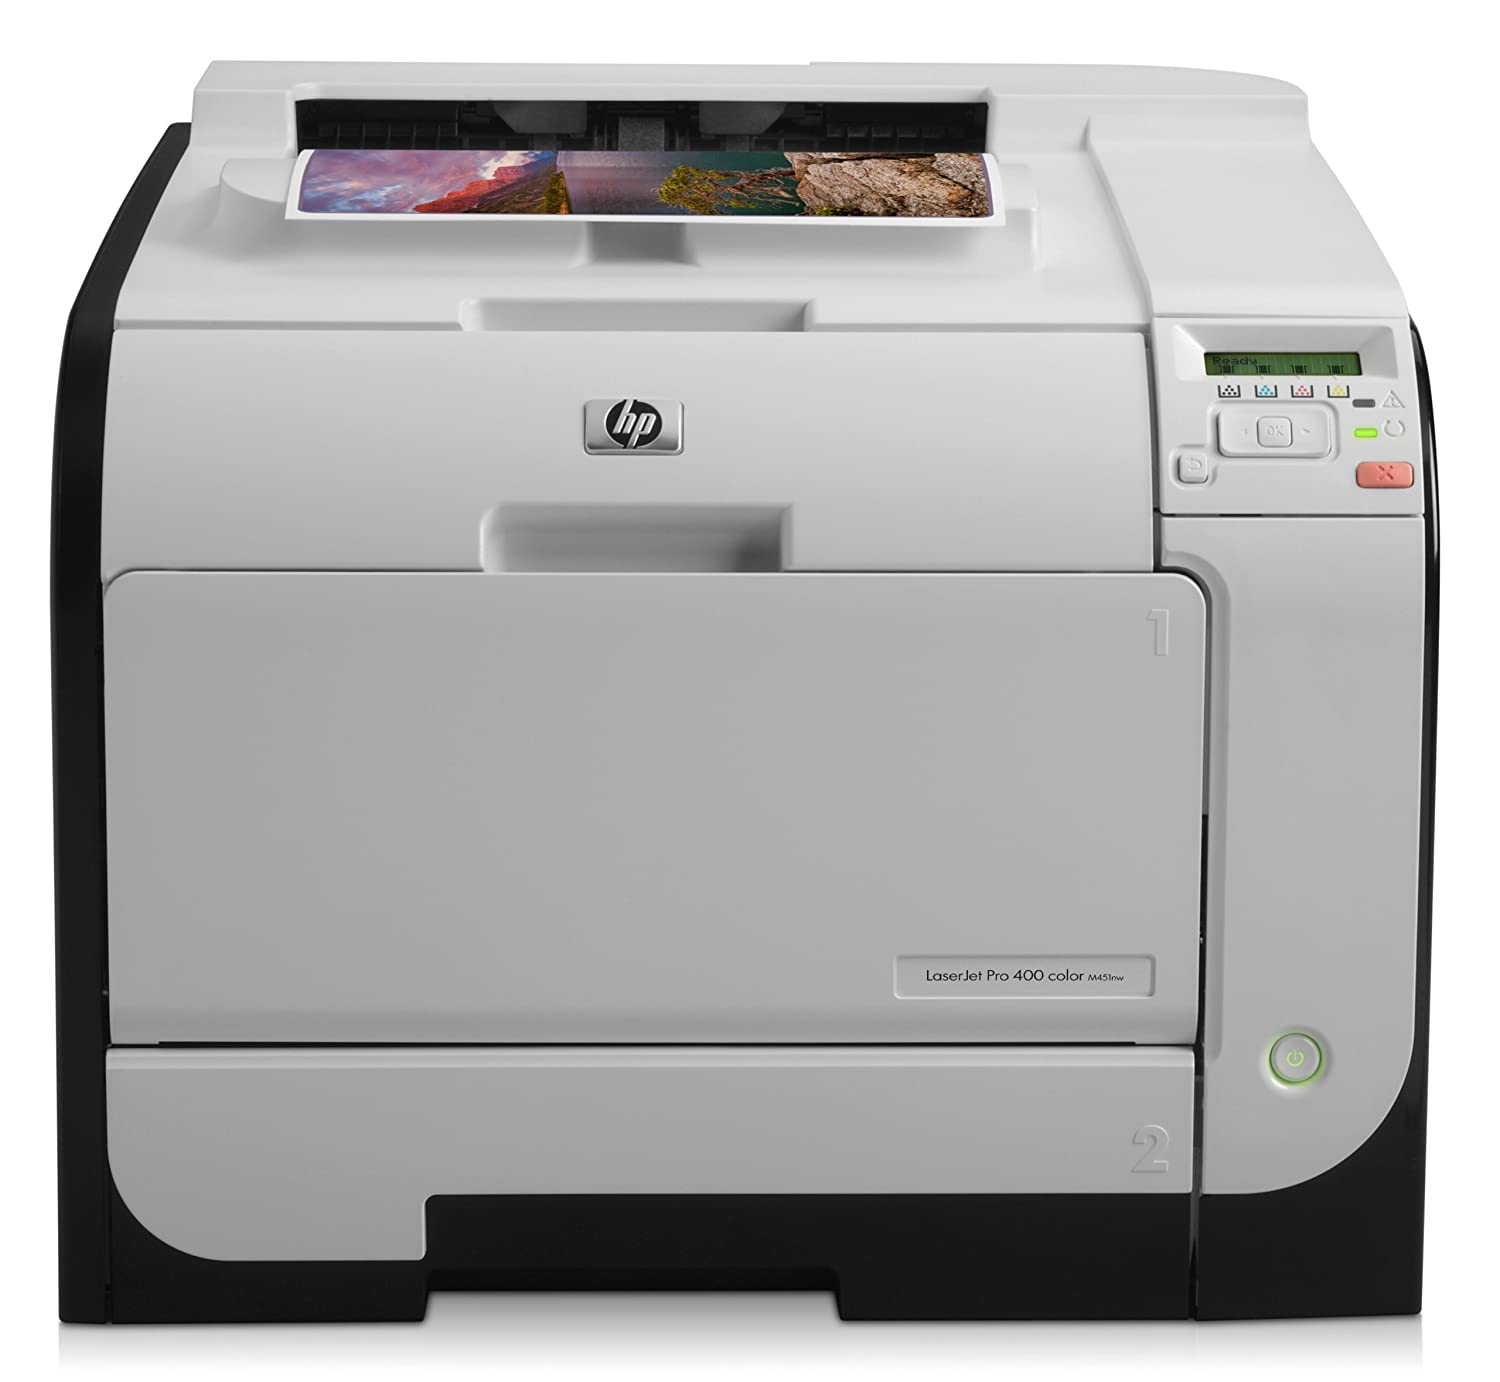 HP Laserjet Pro 400 M451nw Color Printer (CE956A) (Discontinued by Manufacturer) (Renewed)